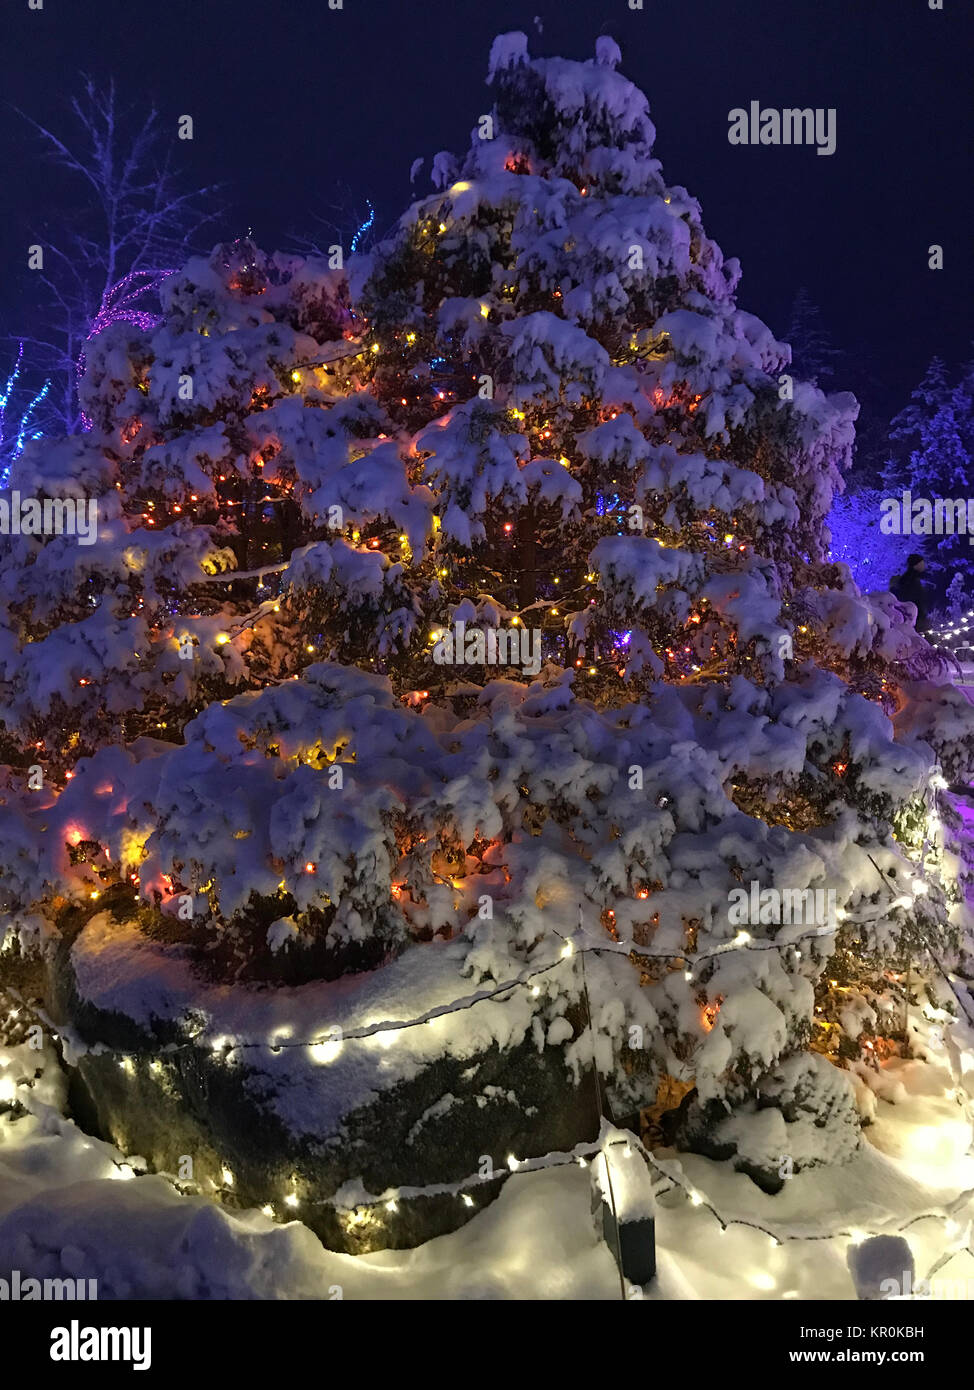 christmas snow scene display in stock photos christmas snow scene